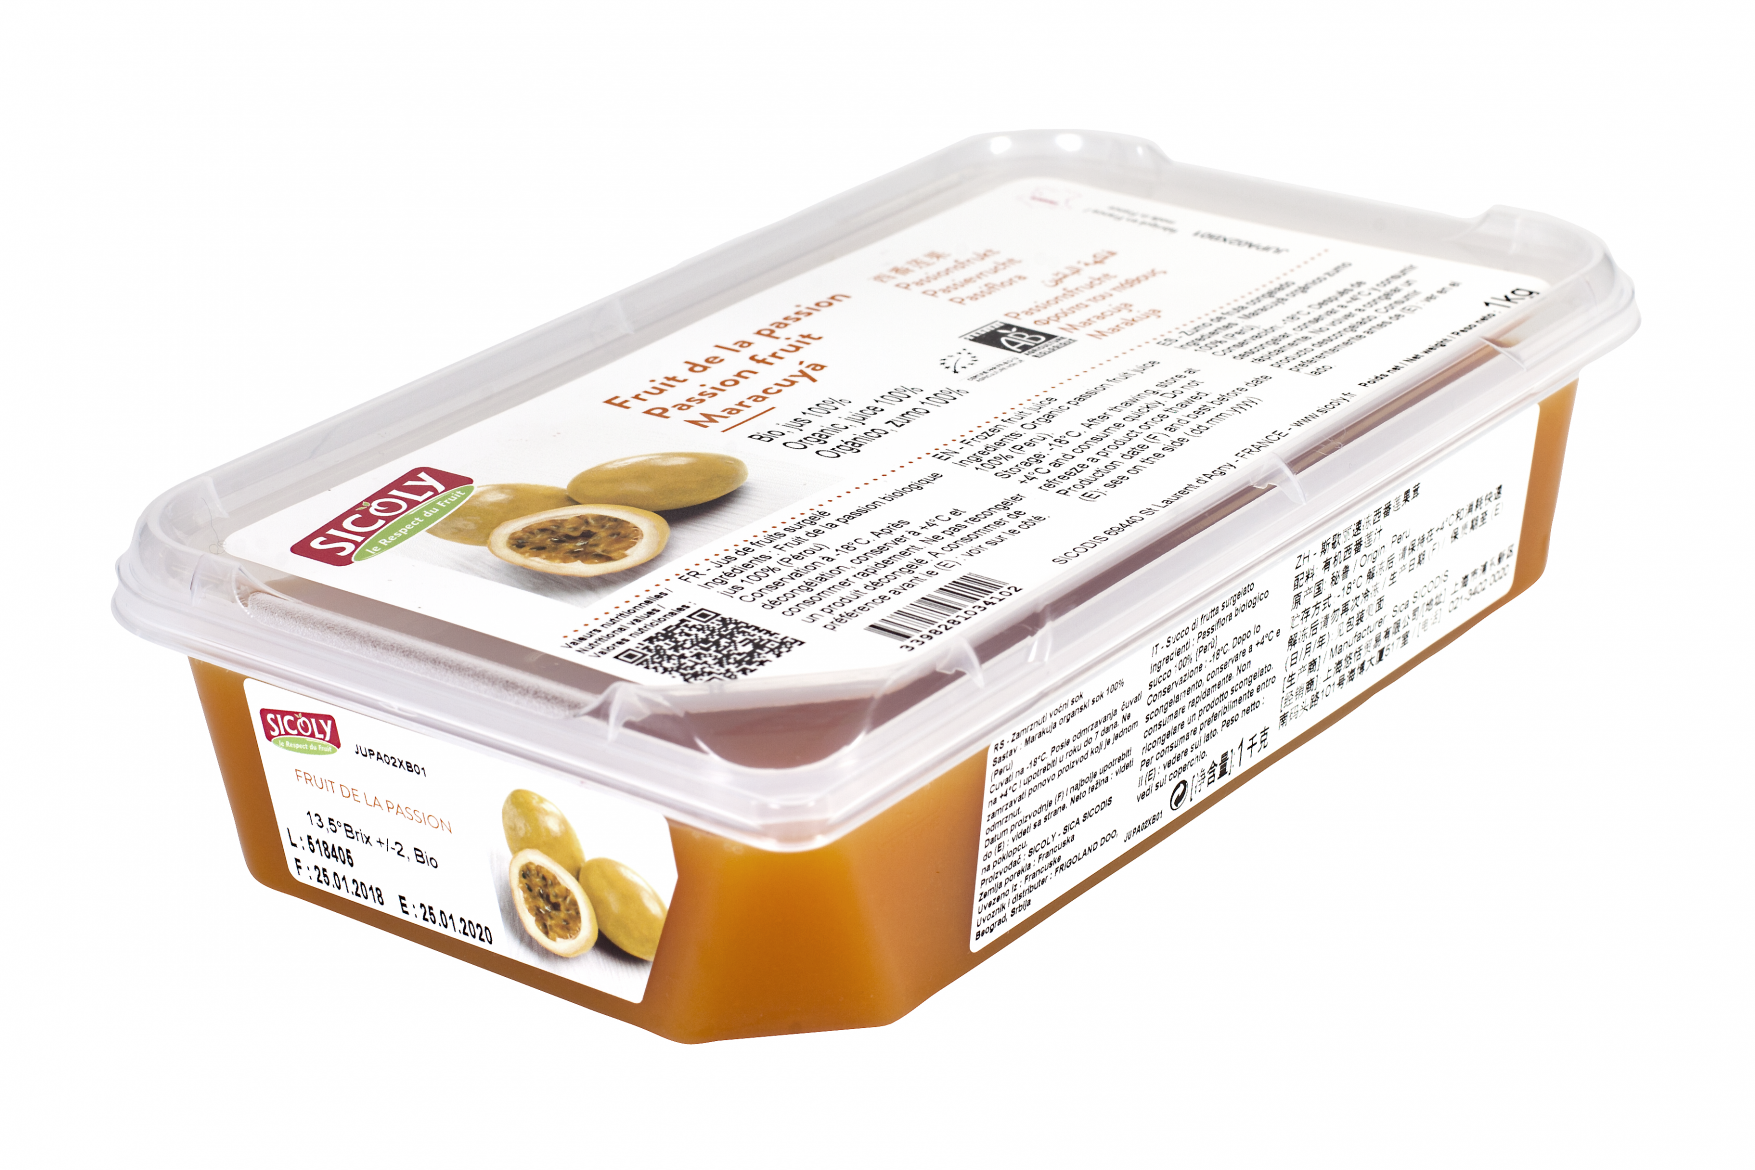 Sicoly product image Unsweetened organic passion fruit purée